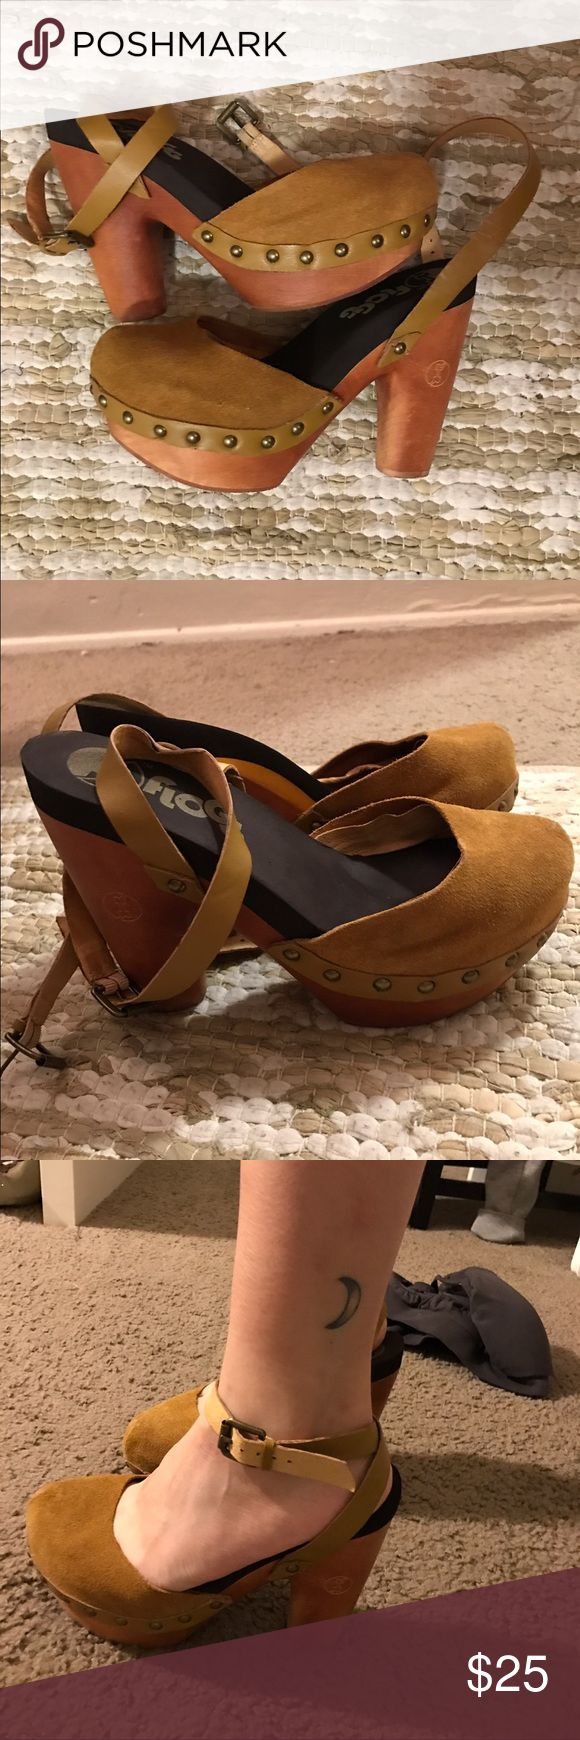 Wooden/Suede Heeled Clogs Super soft and comfy clogs. Only worn twice. Bought at buffalo exchange for $35! Listing as free people for exposure. Thanks :) Free People Shoes Heels